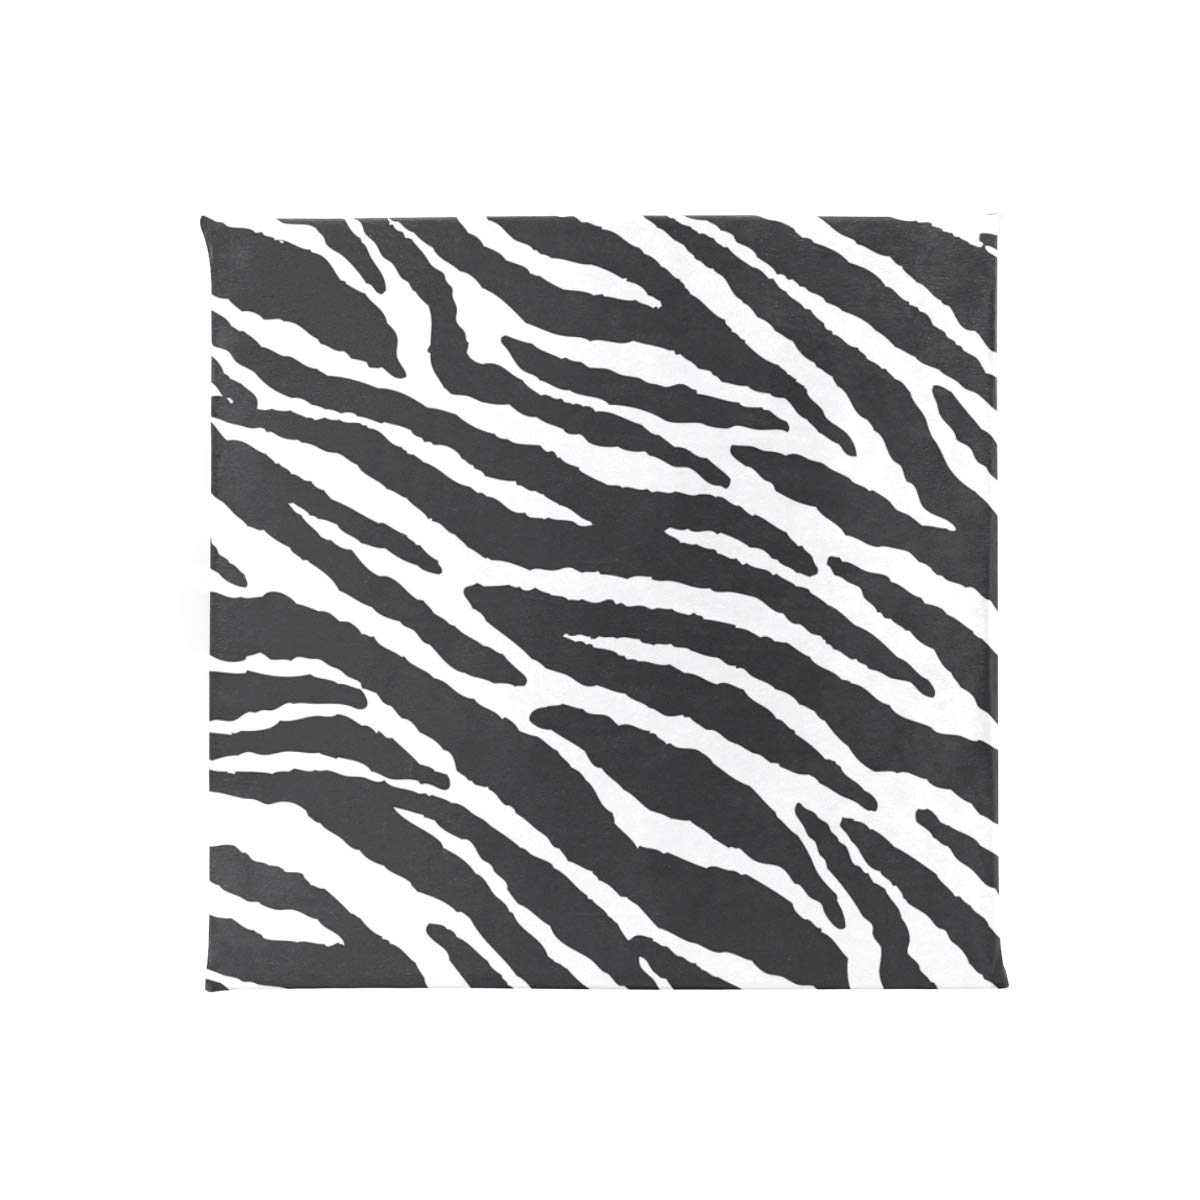 TSWEETHOME Comfort Memory Foam Square Chair Cushion Seat Cushion with Animal Skins Zebra Print Chair Pads for Floors Dining Office Chairs by TSWEETHOME (Image #2)